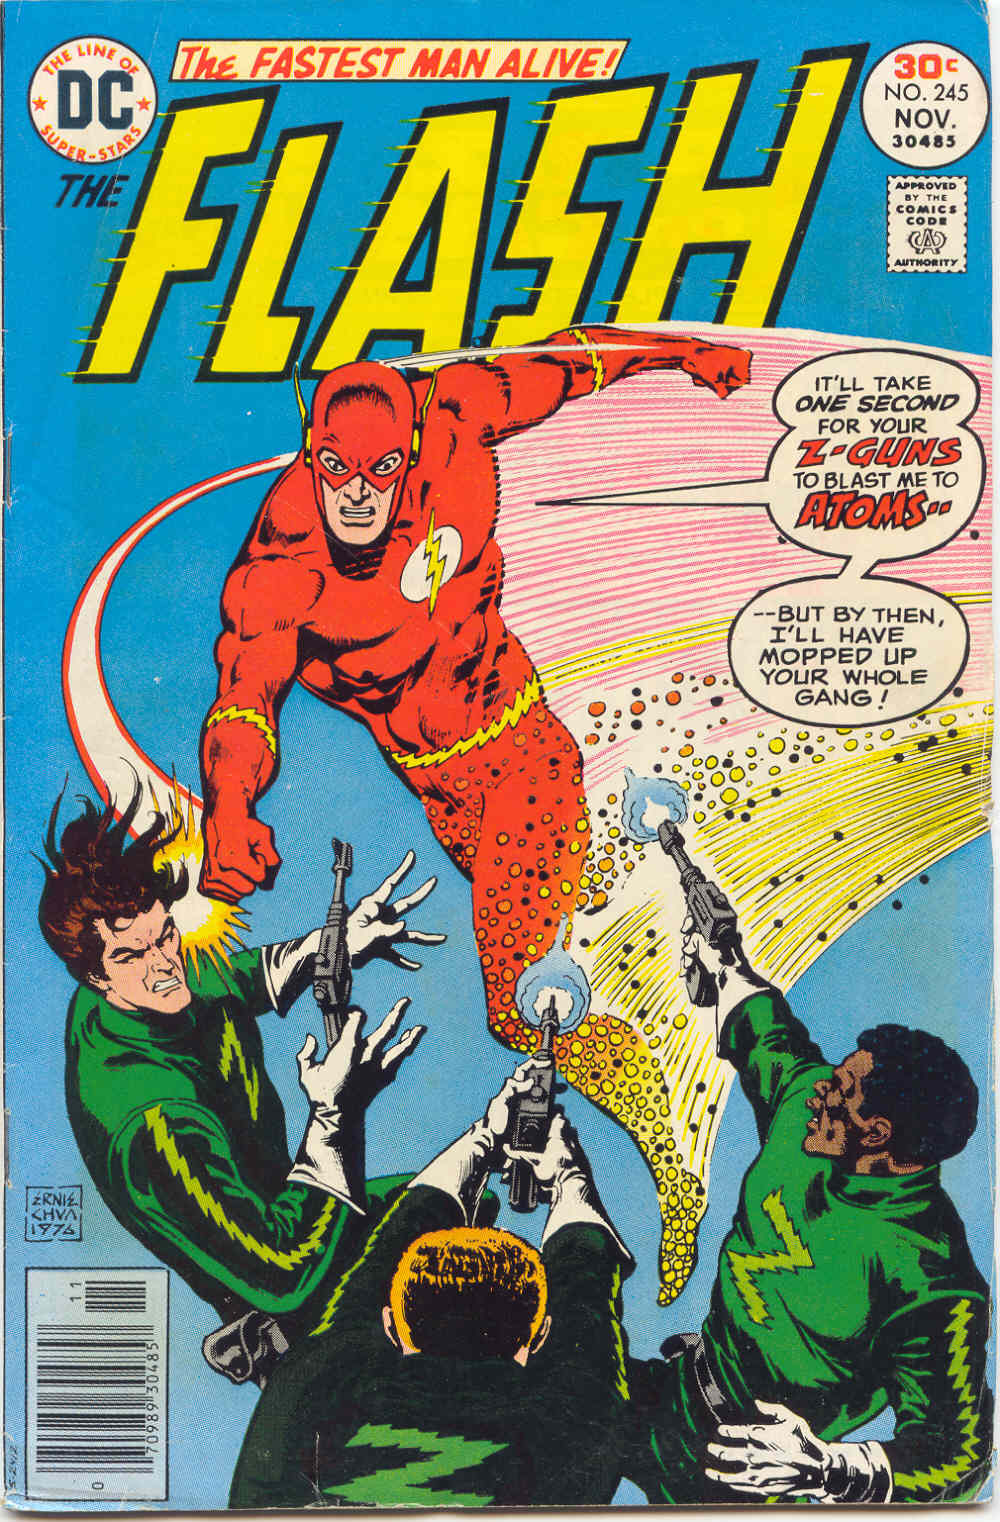 The Flash (1959) issue 245 - Page 1